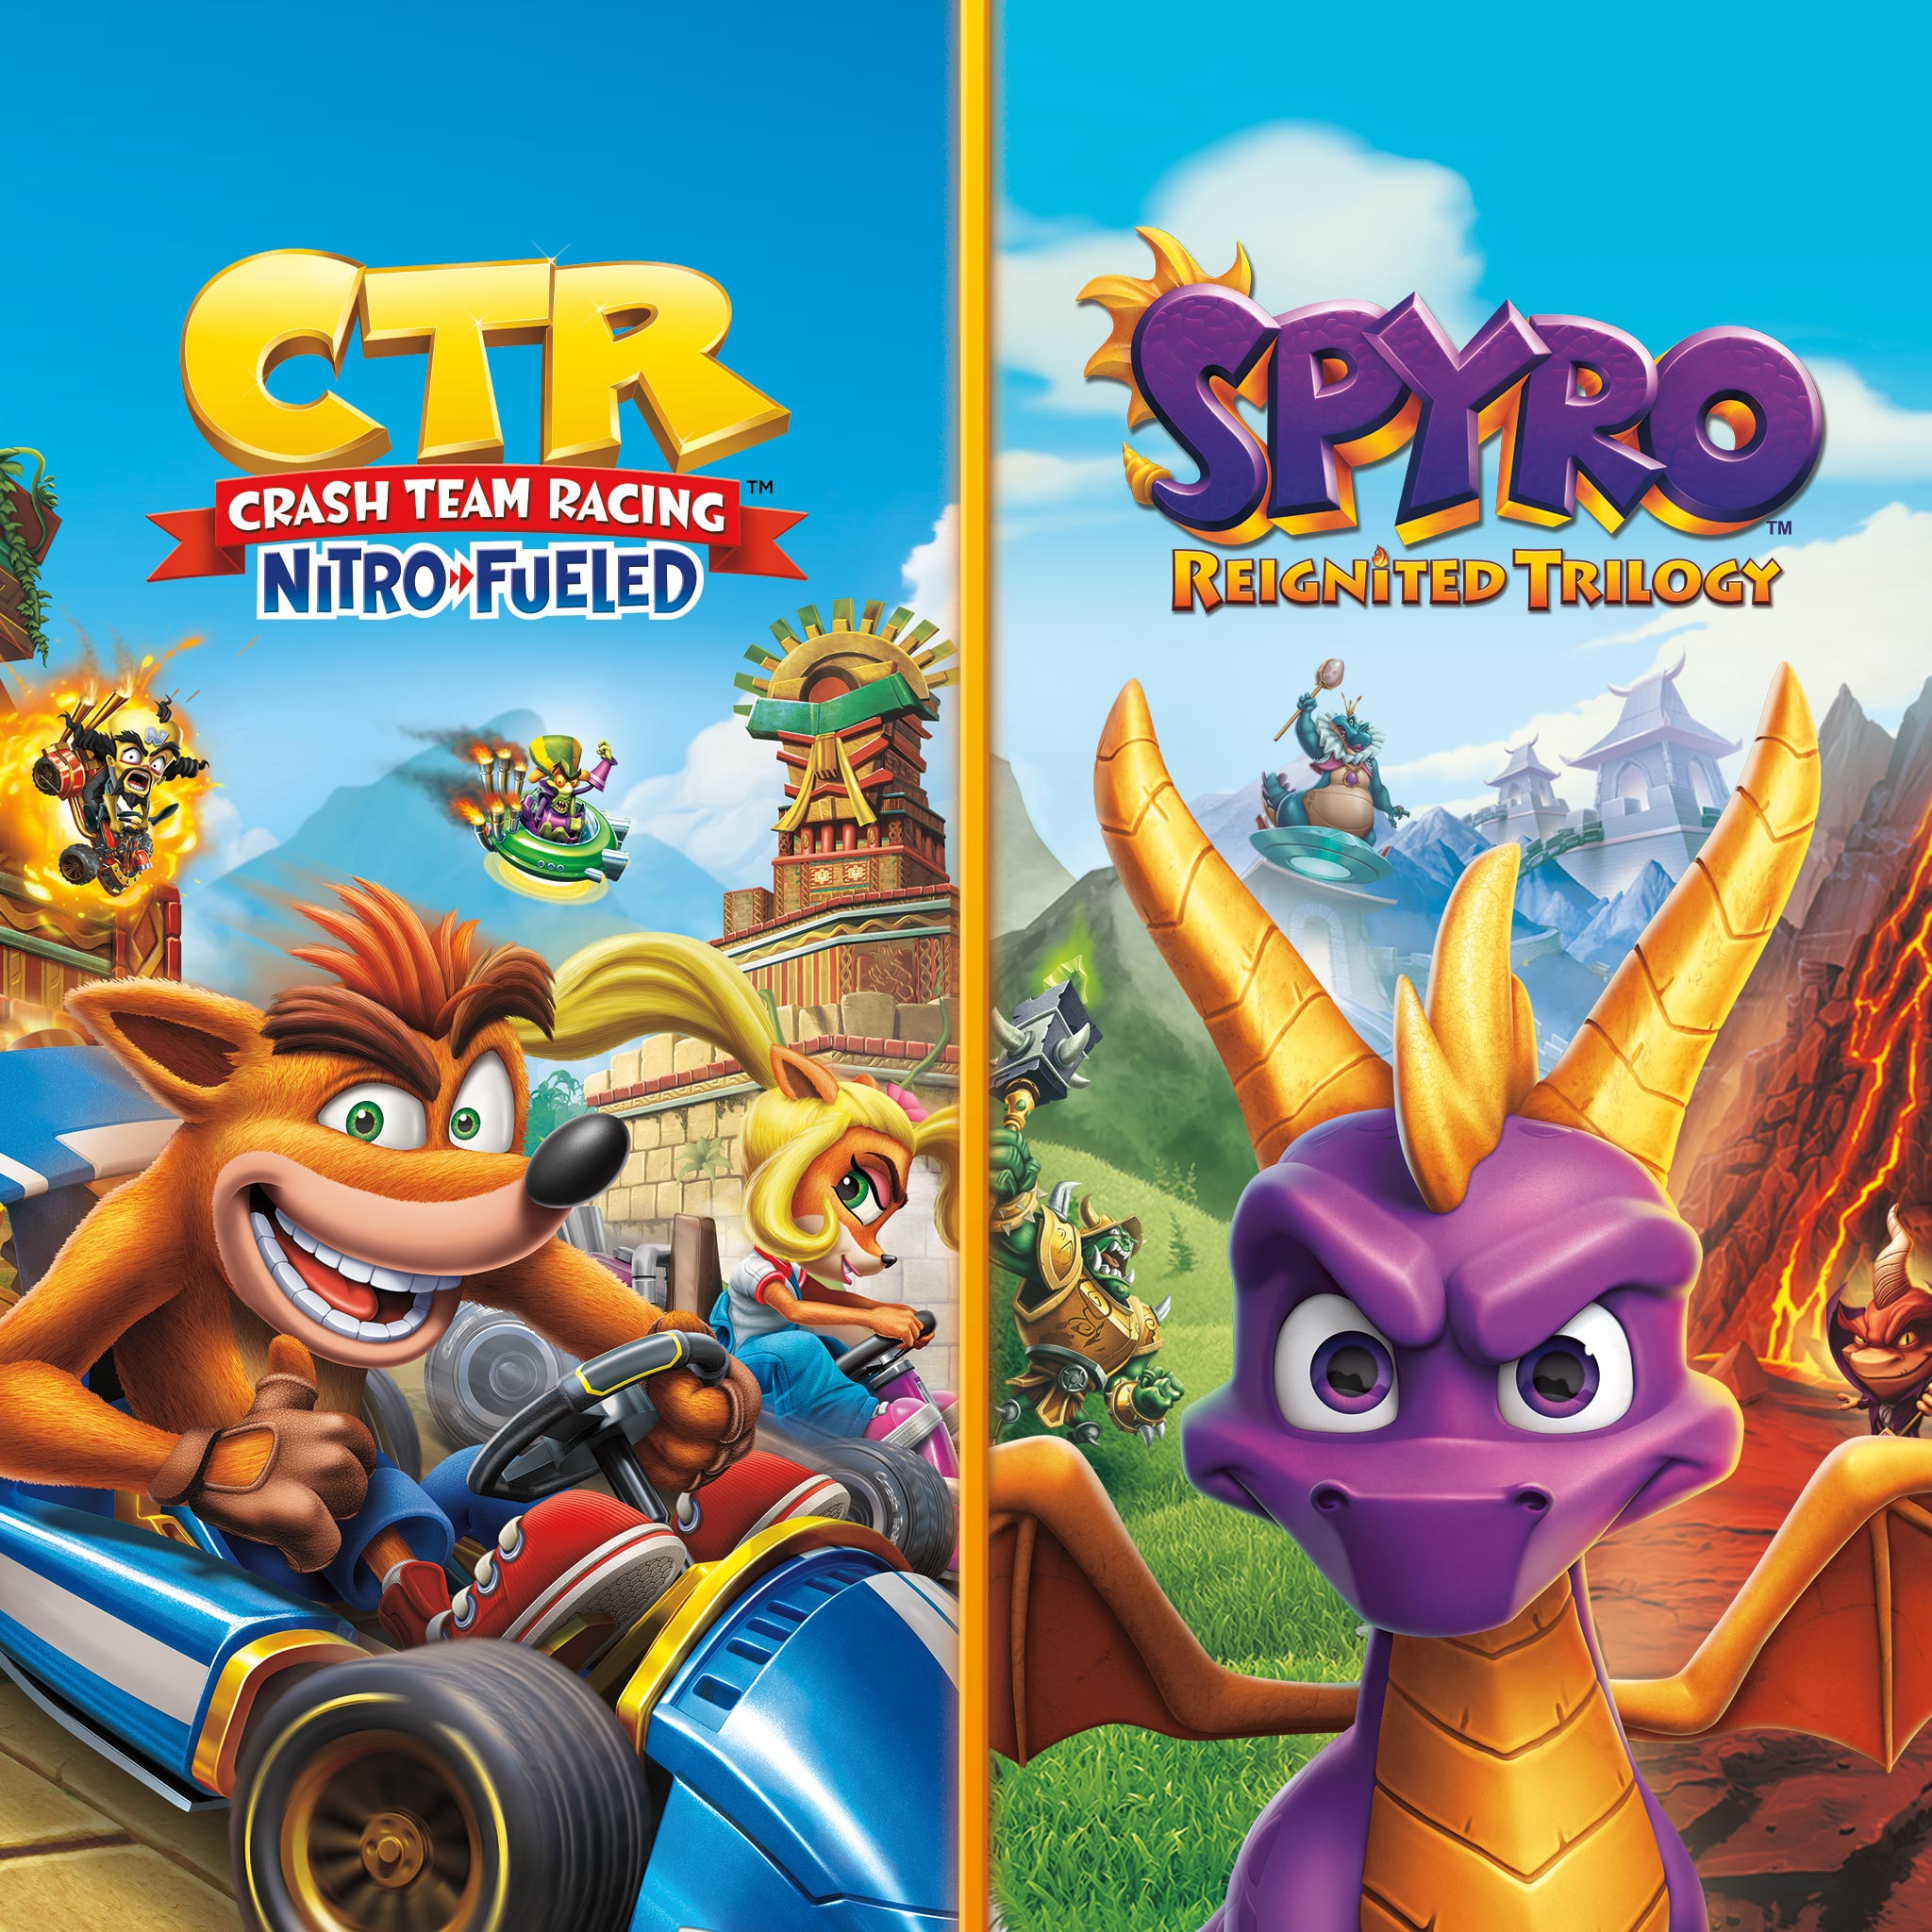 Lote Crash™ Team Racing Nitro-Fueled + Spyro™